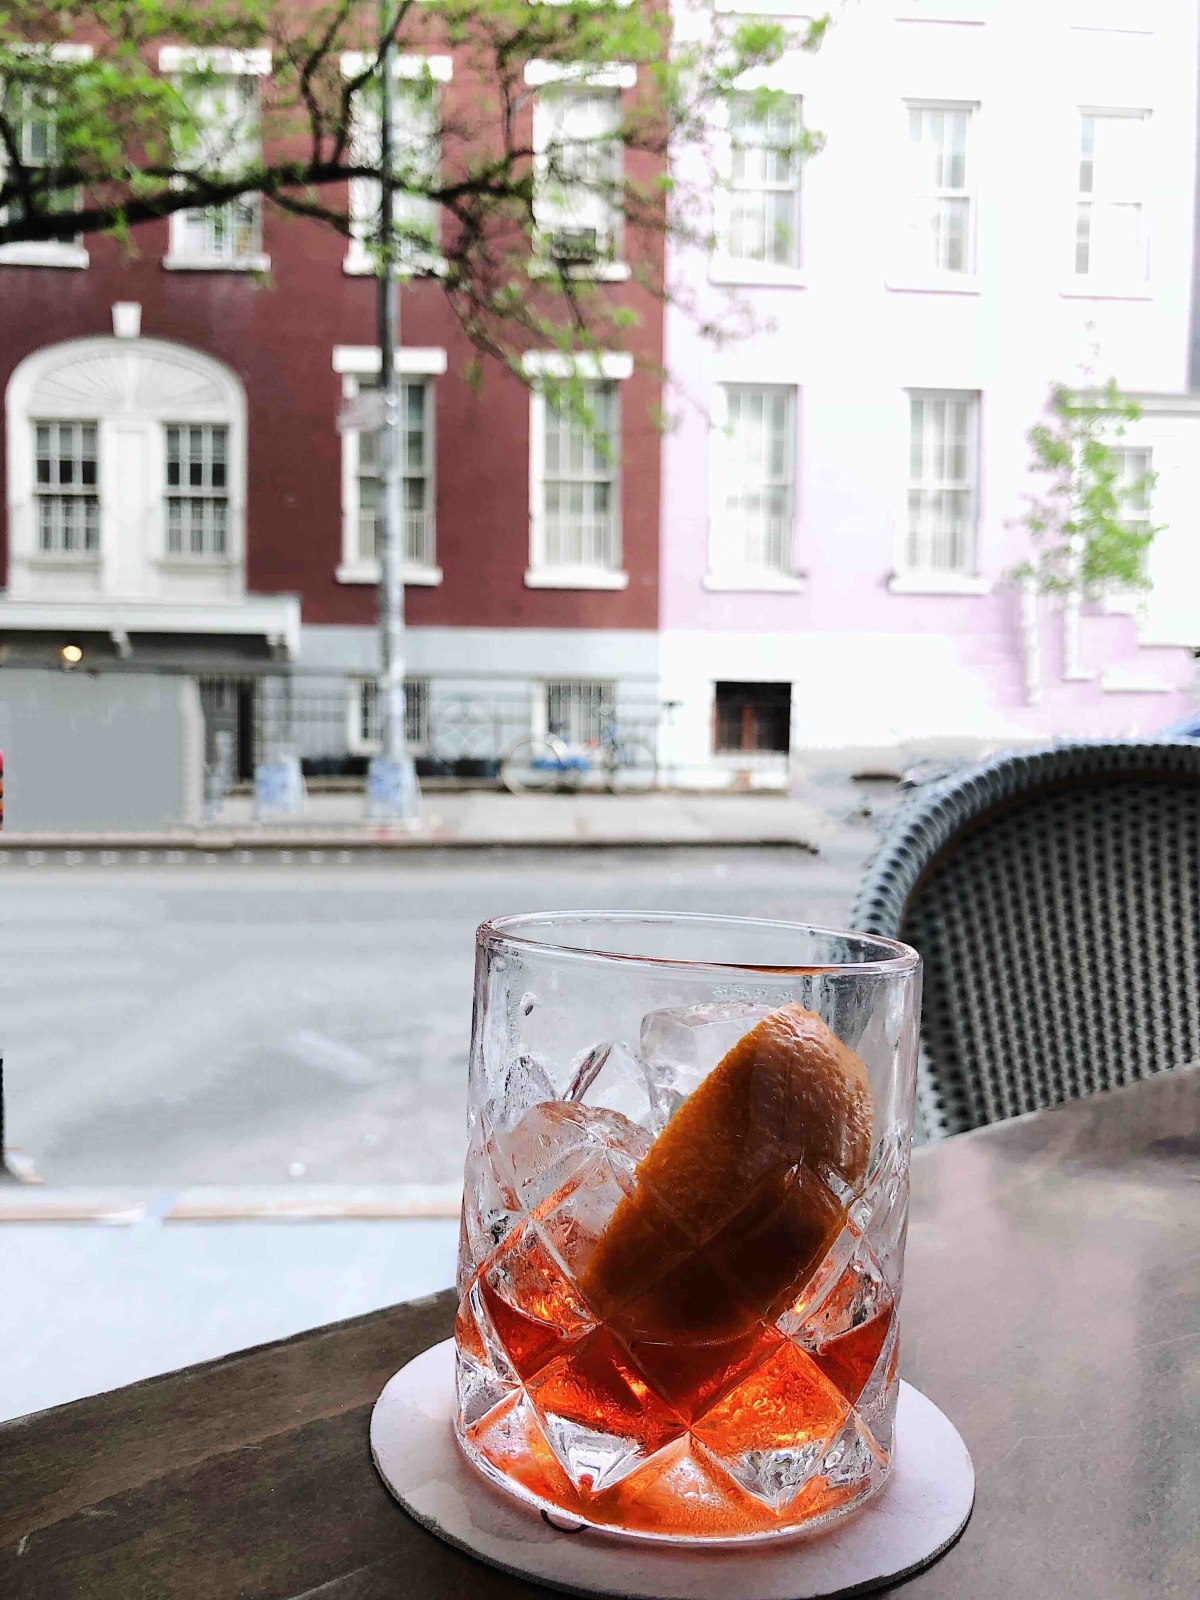 Perfect spot to people watch and sip on an epic negroni .